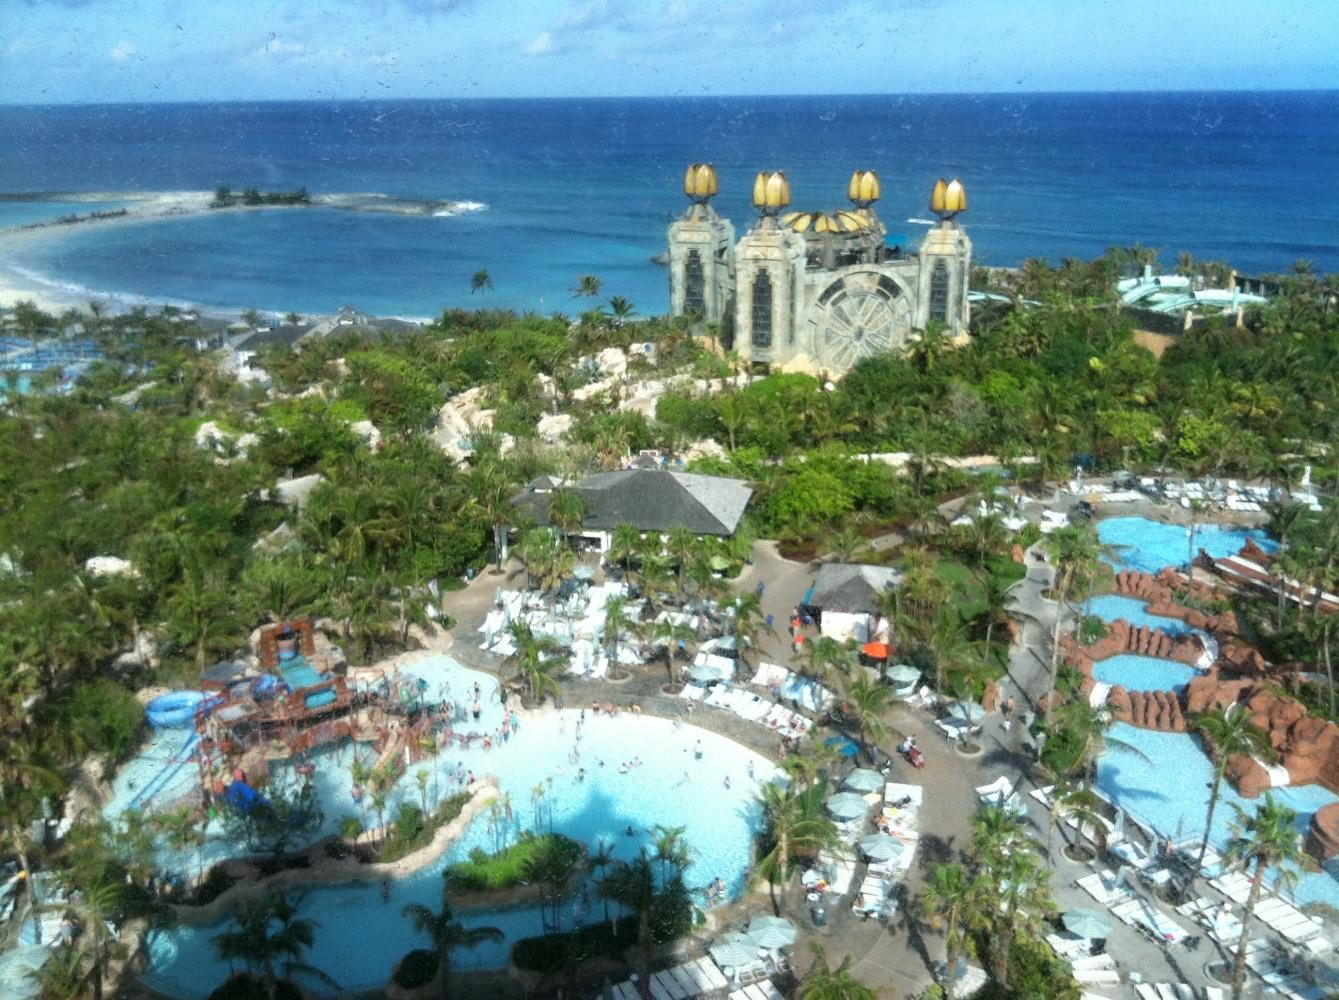 A corner room view of the Bahamas.